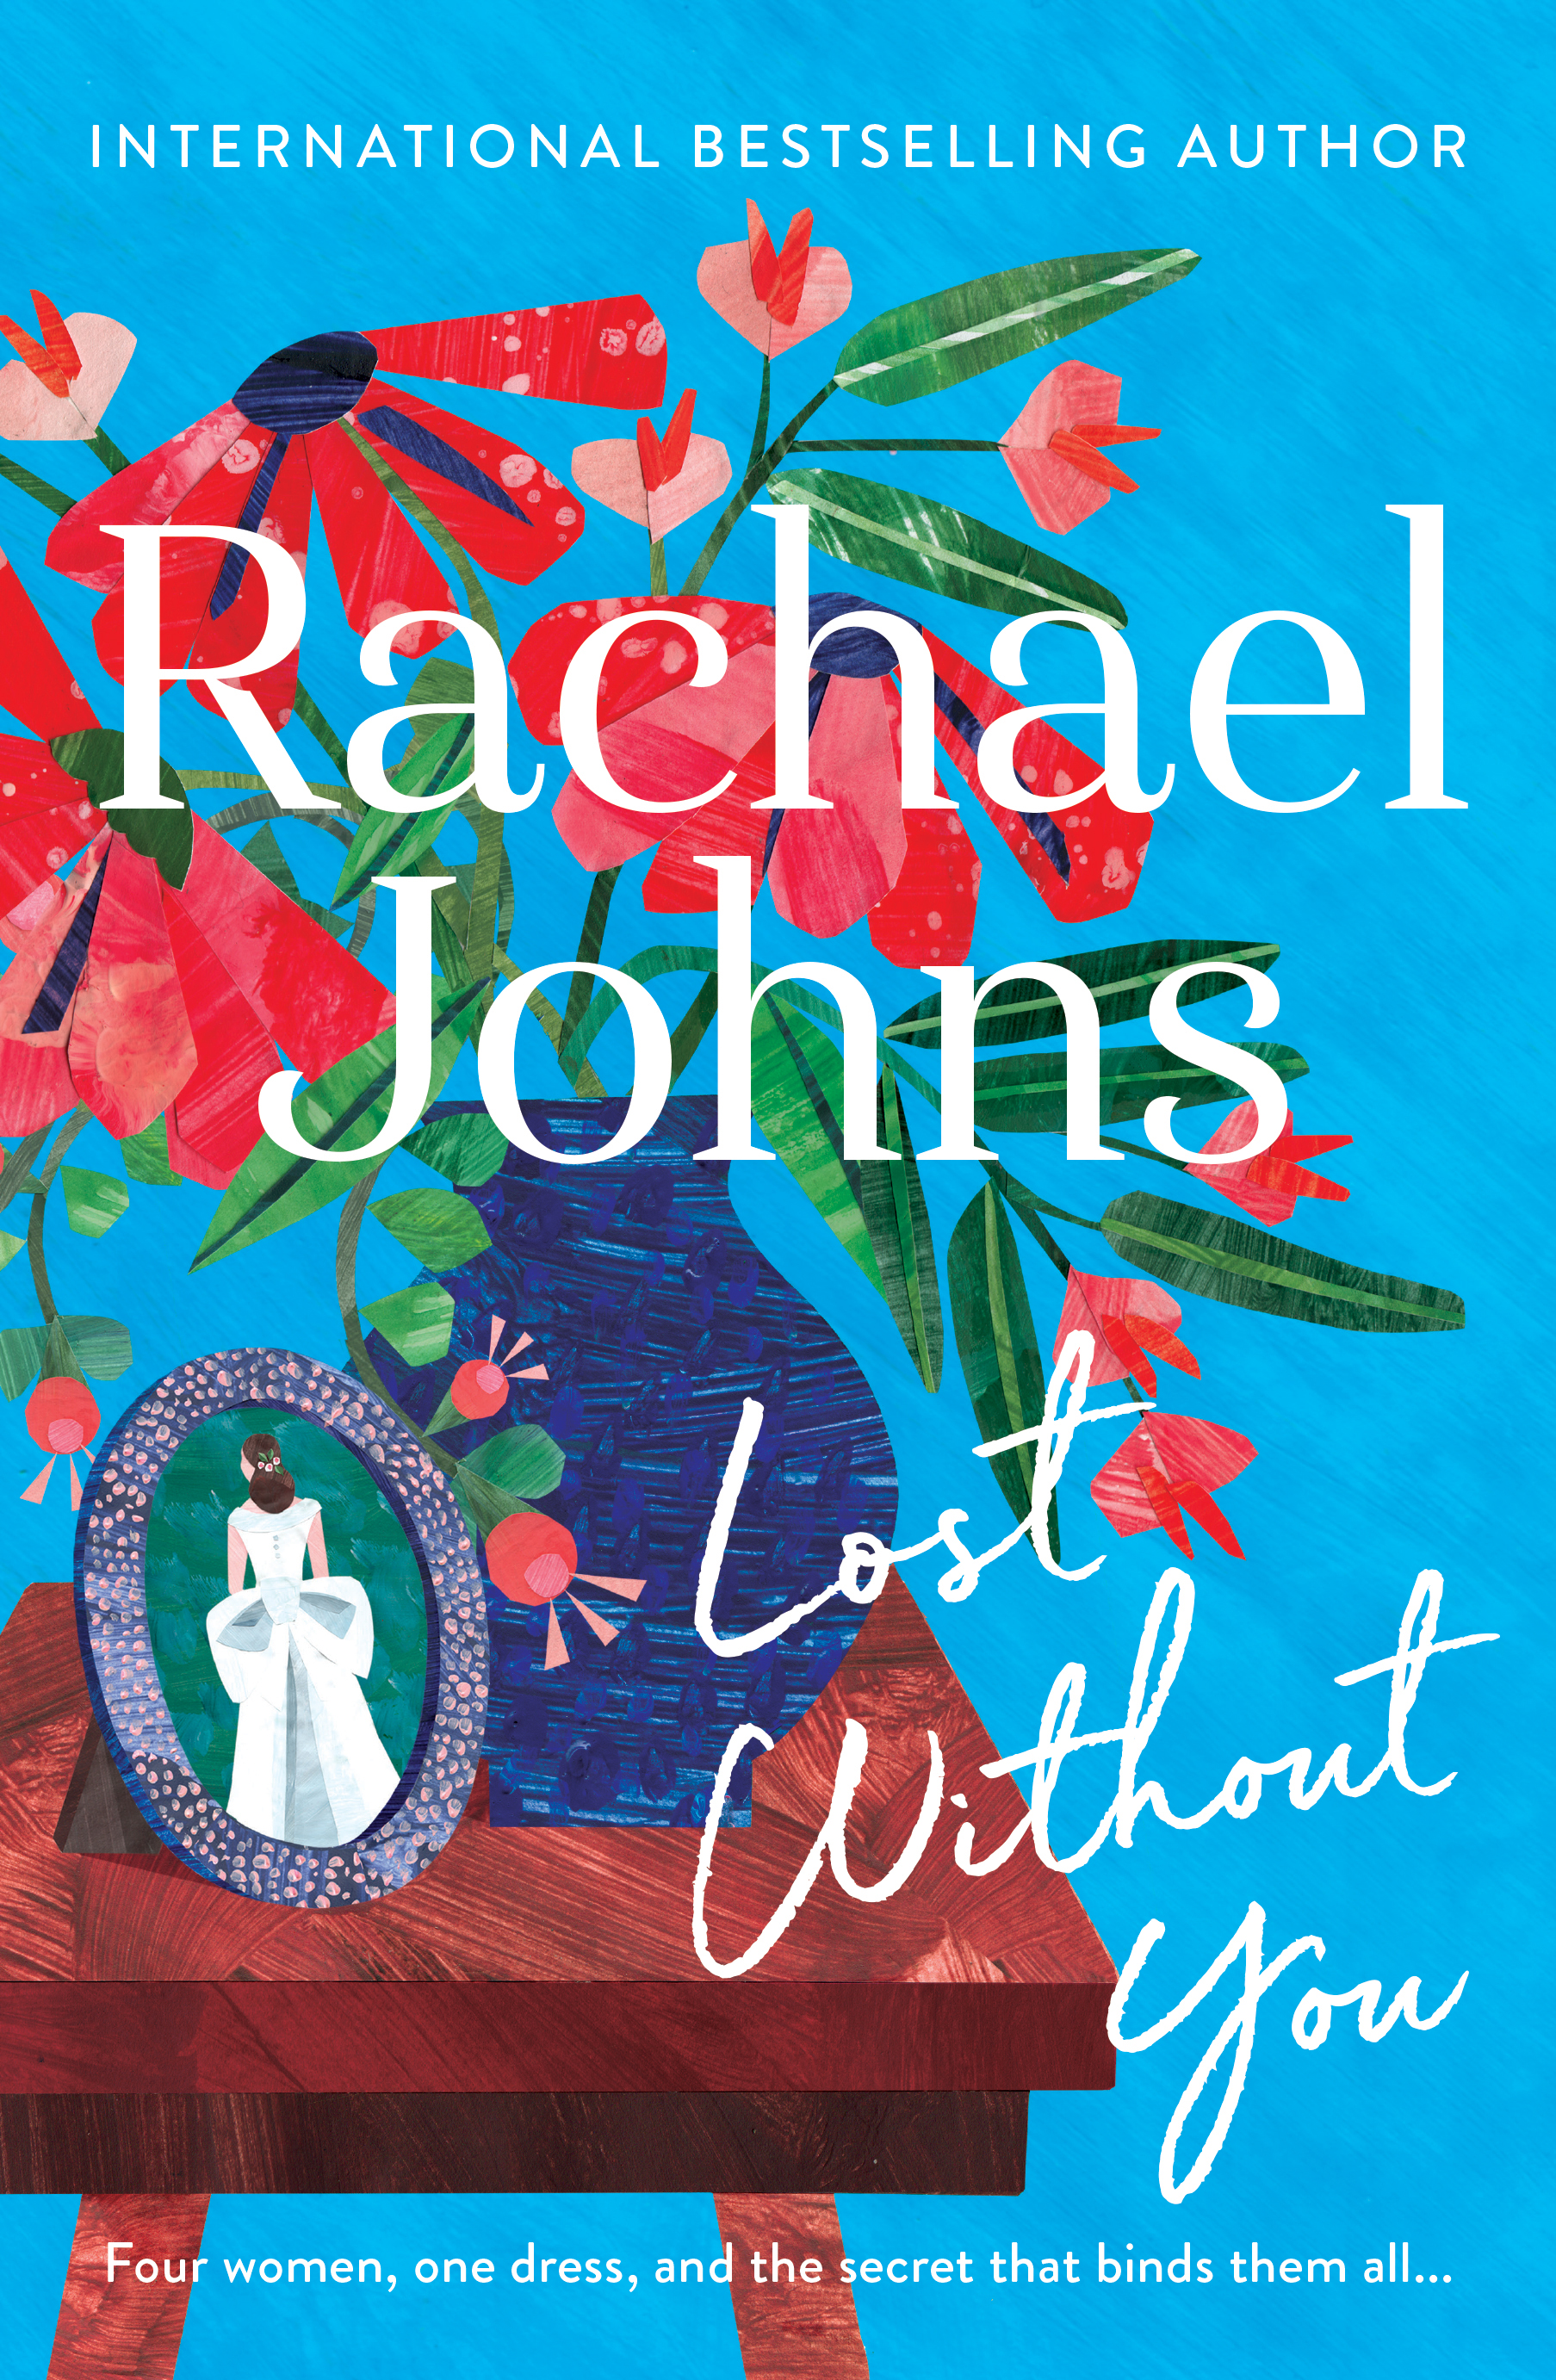 'Lost Without You' by Rachael Johns  Artwork: Alice Lindstrom  Publisher: Harper Collins Australia / New Zealand  Art Direction and Design: Lisa White and Mark Campbell